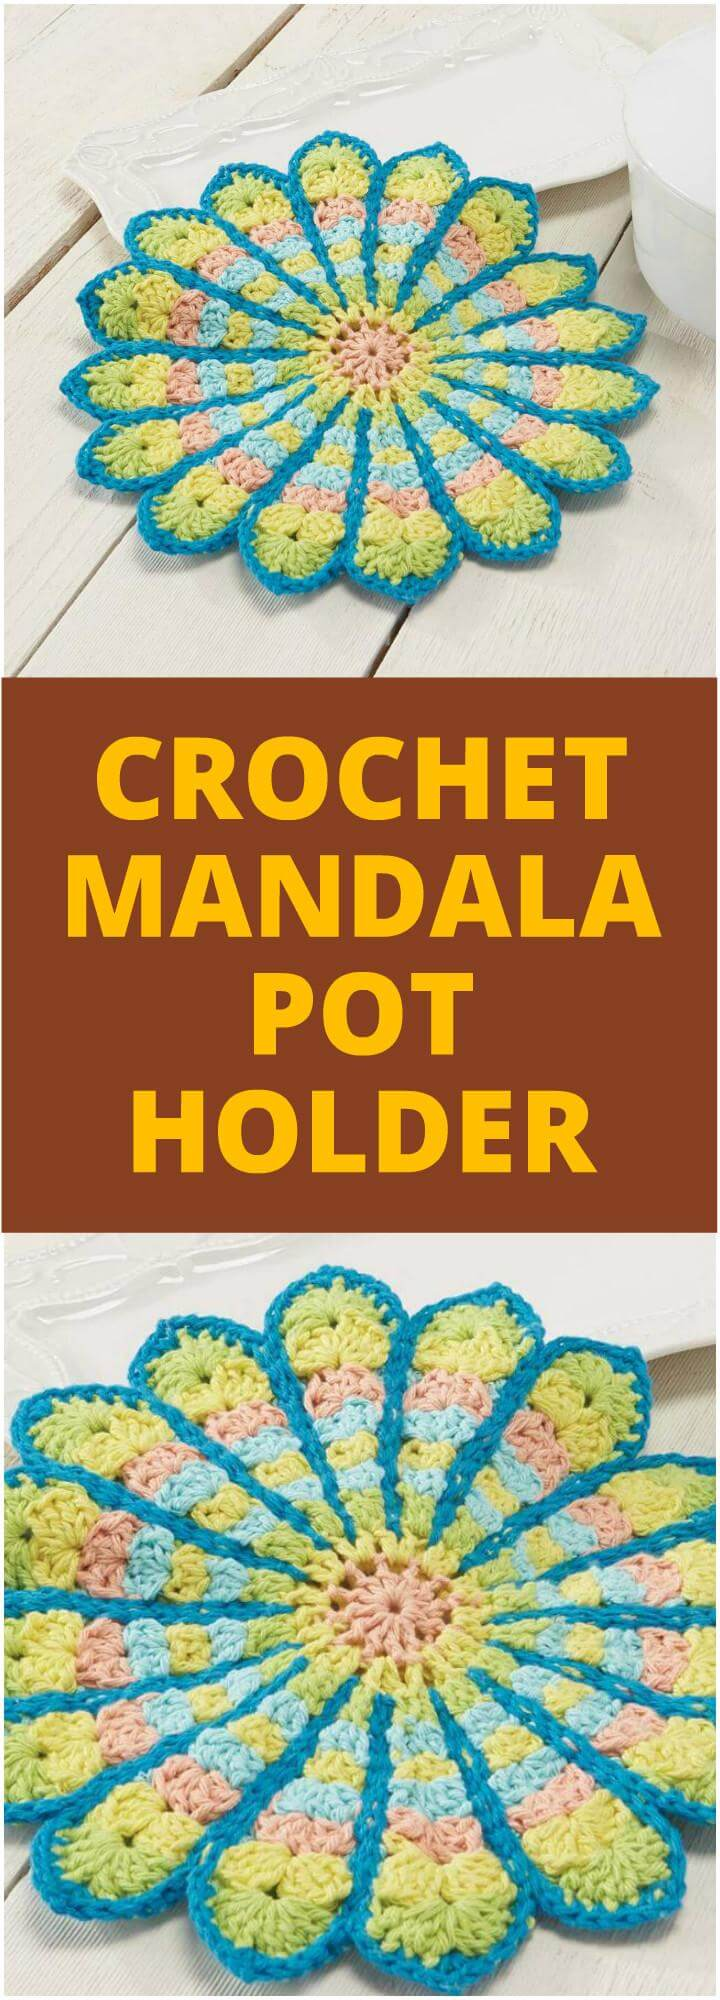 Crocheting Pot Holders : easy crochet mandala pot holder